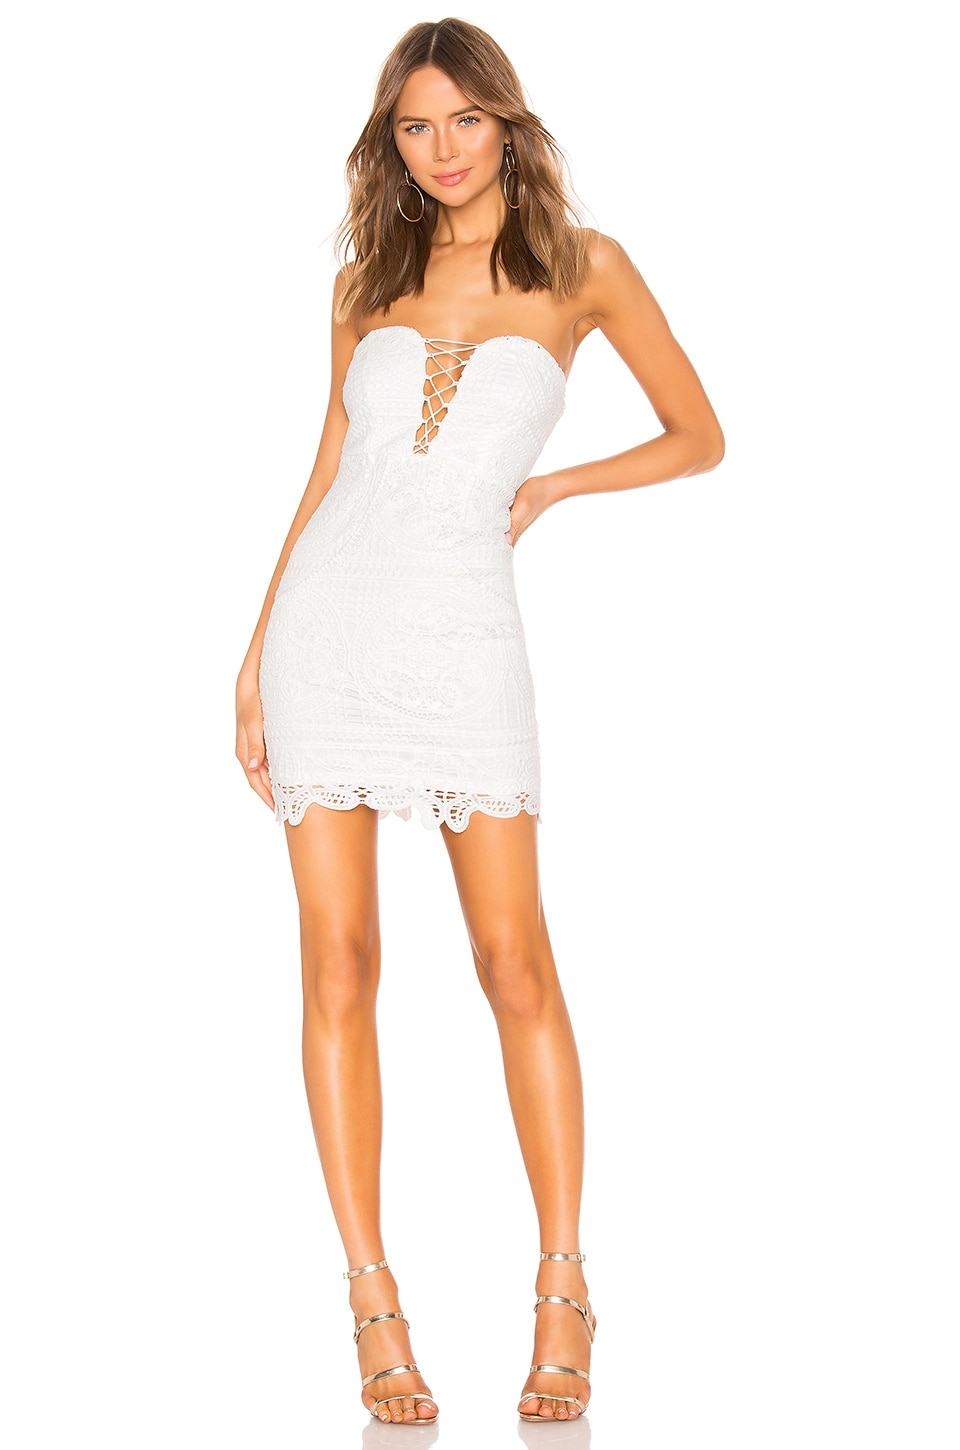 Lillian Lace Dress